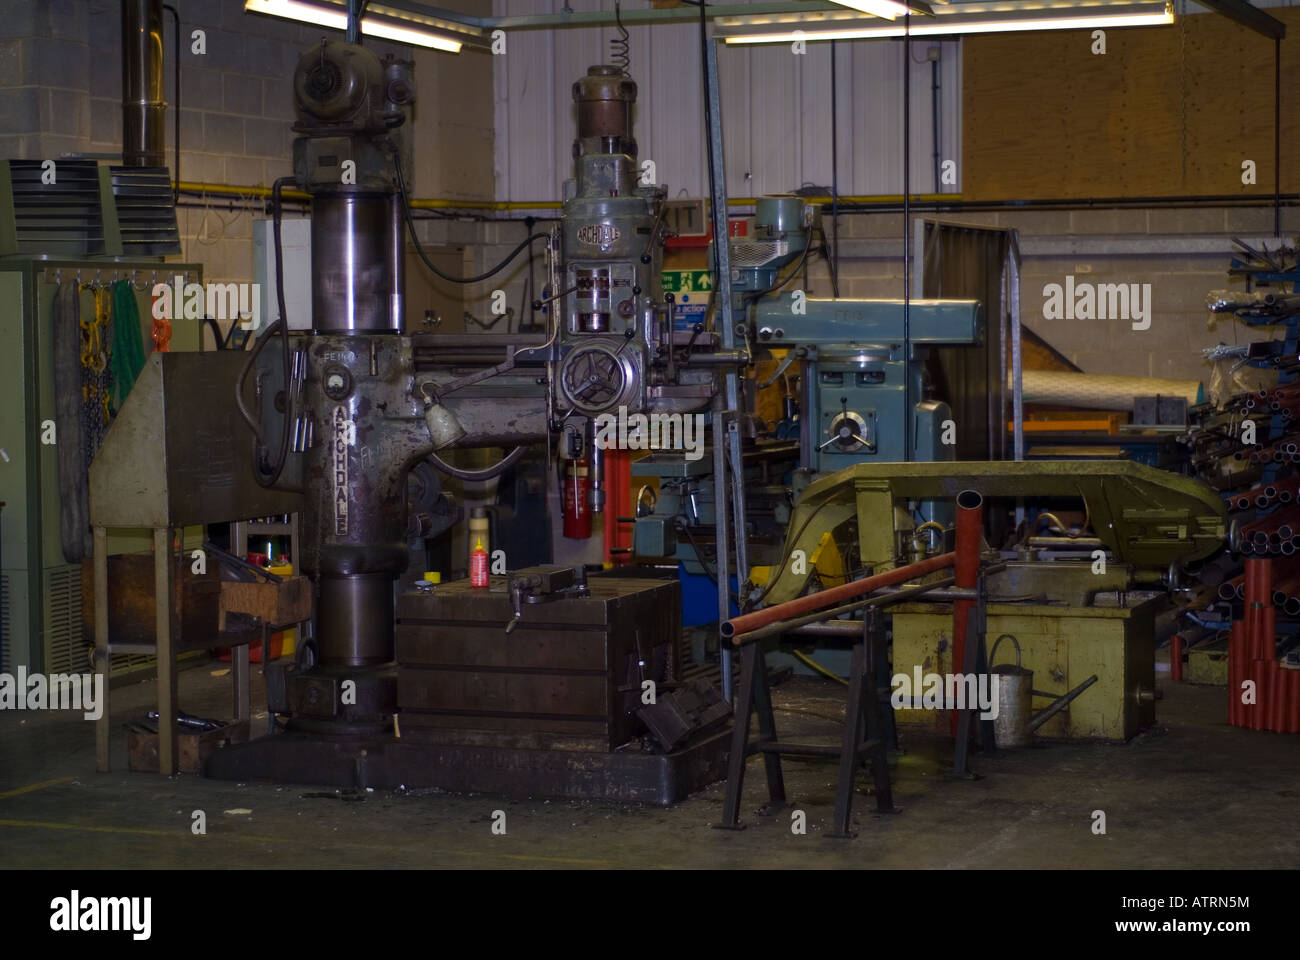 A Metalwork Machining Workshop - Stock Image